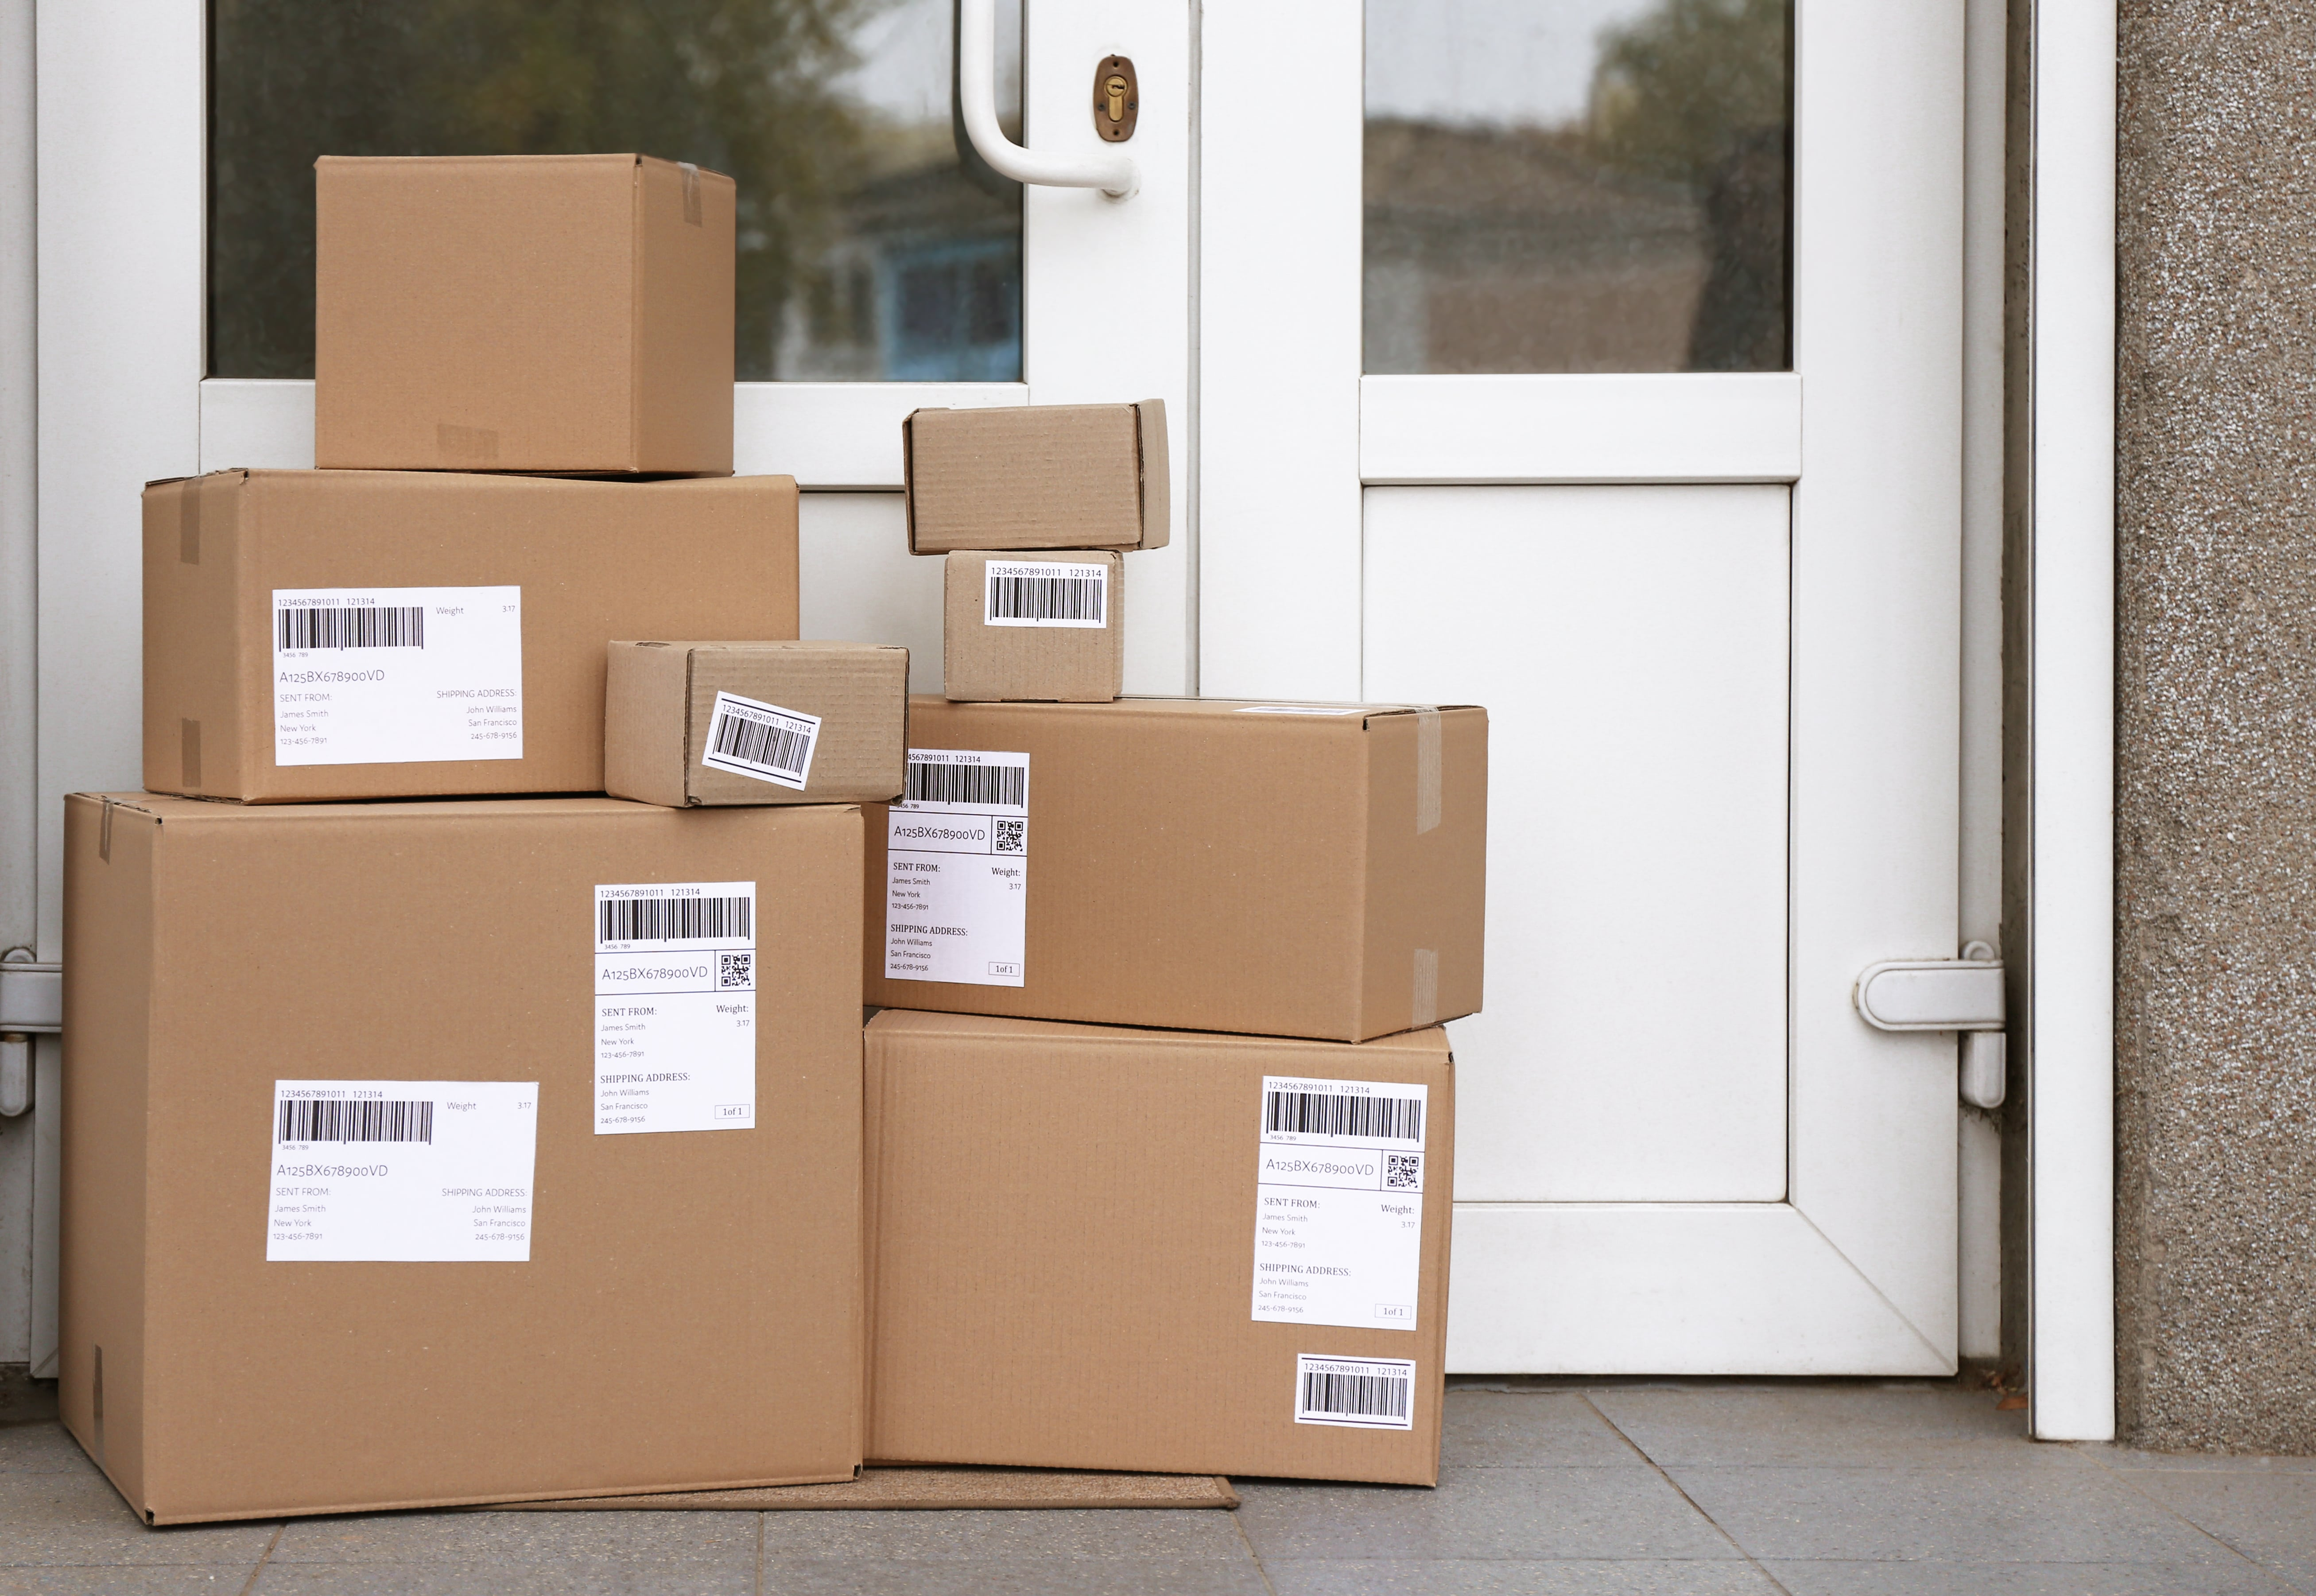 Packages, Delivered Parcels, At Home, Theft Prevention, Securing Your Home, Holidays, Christmas